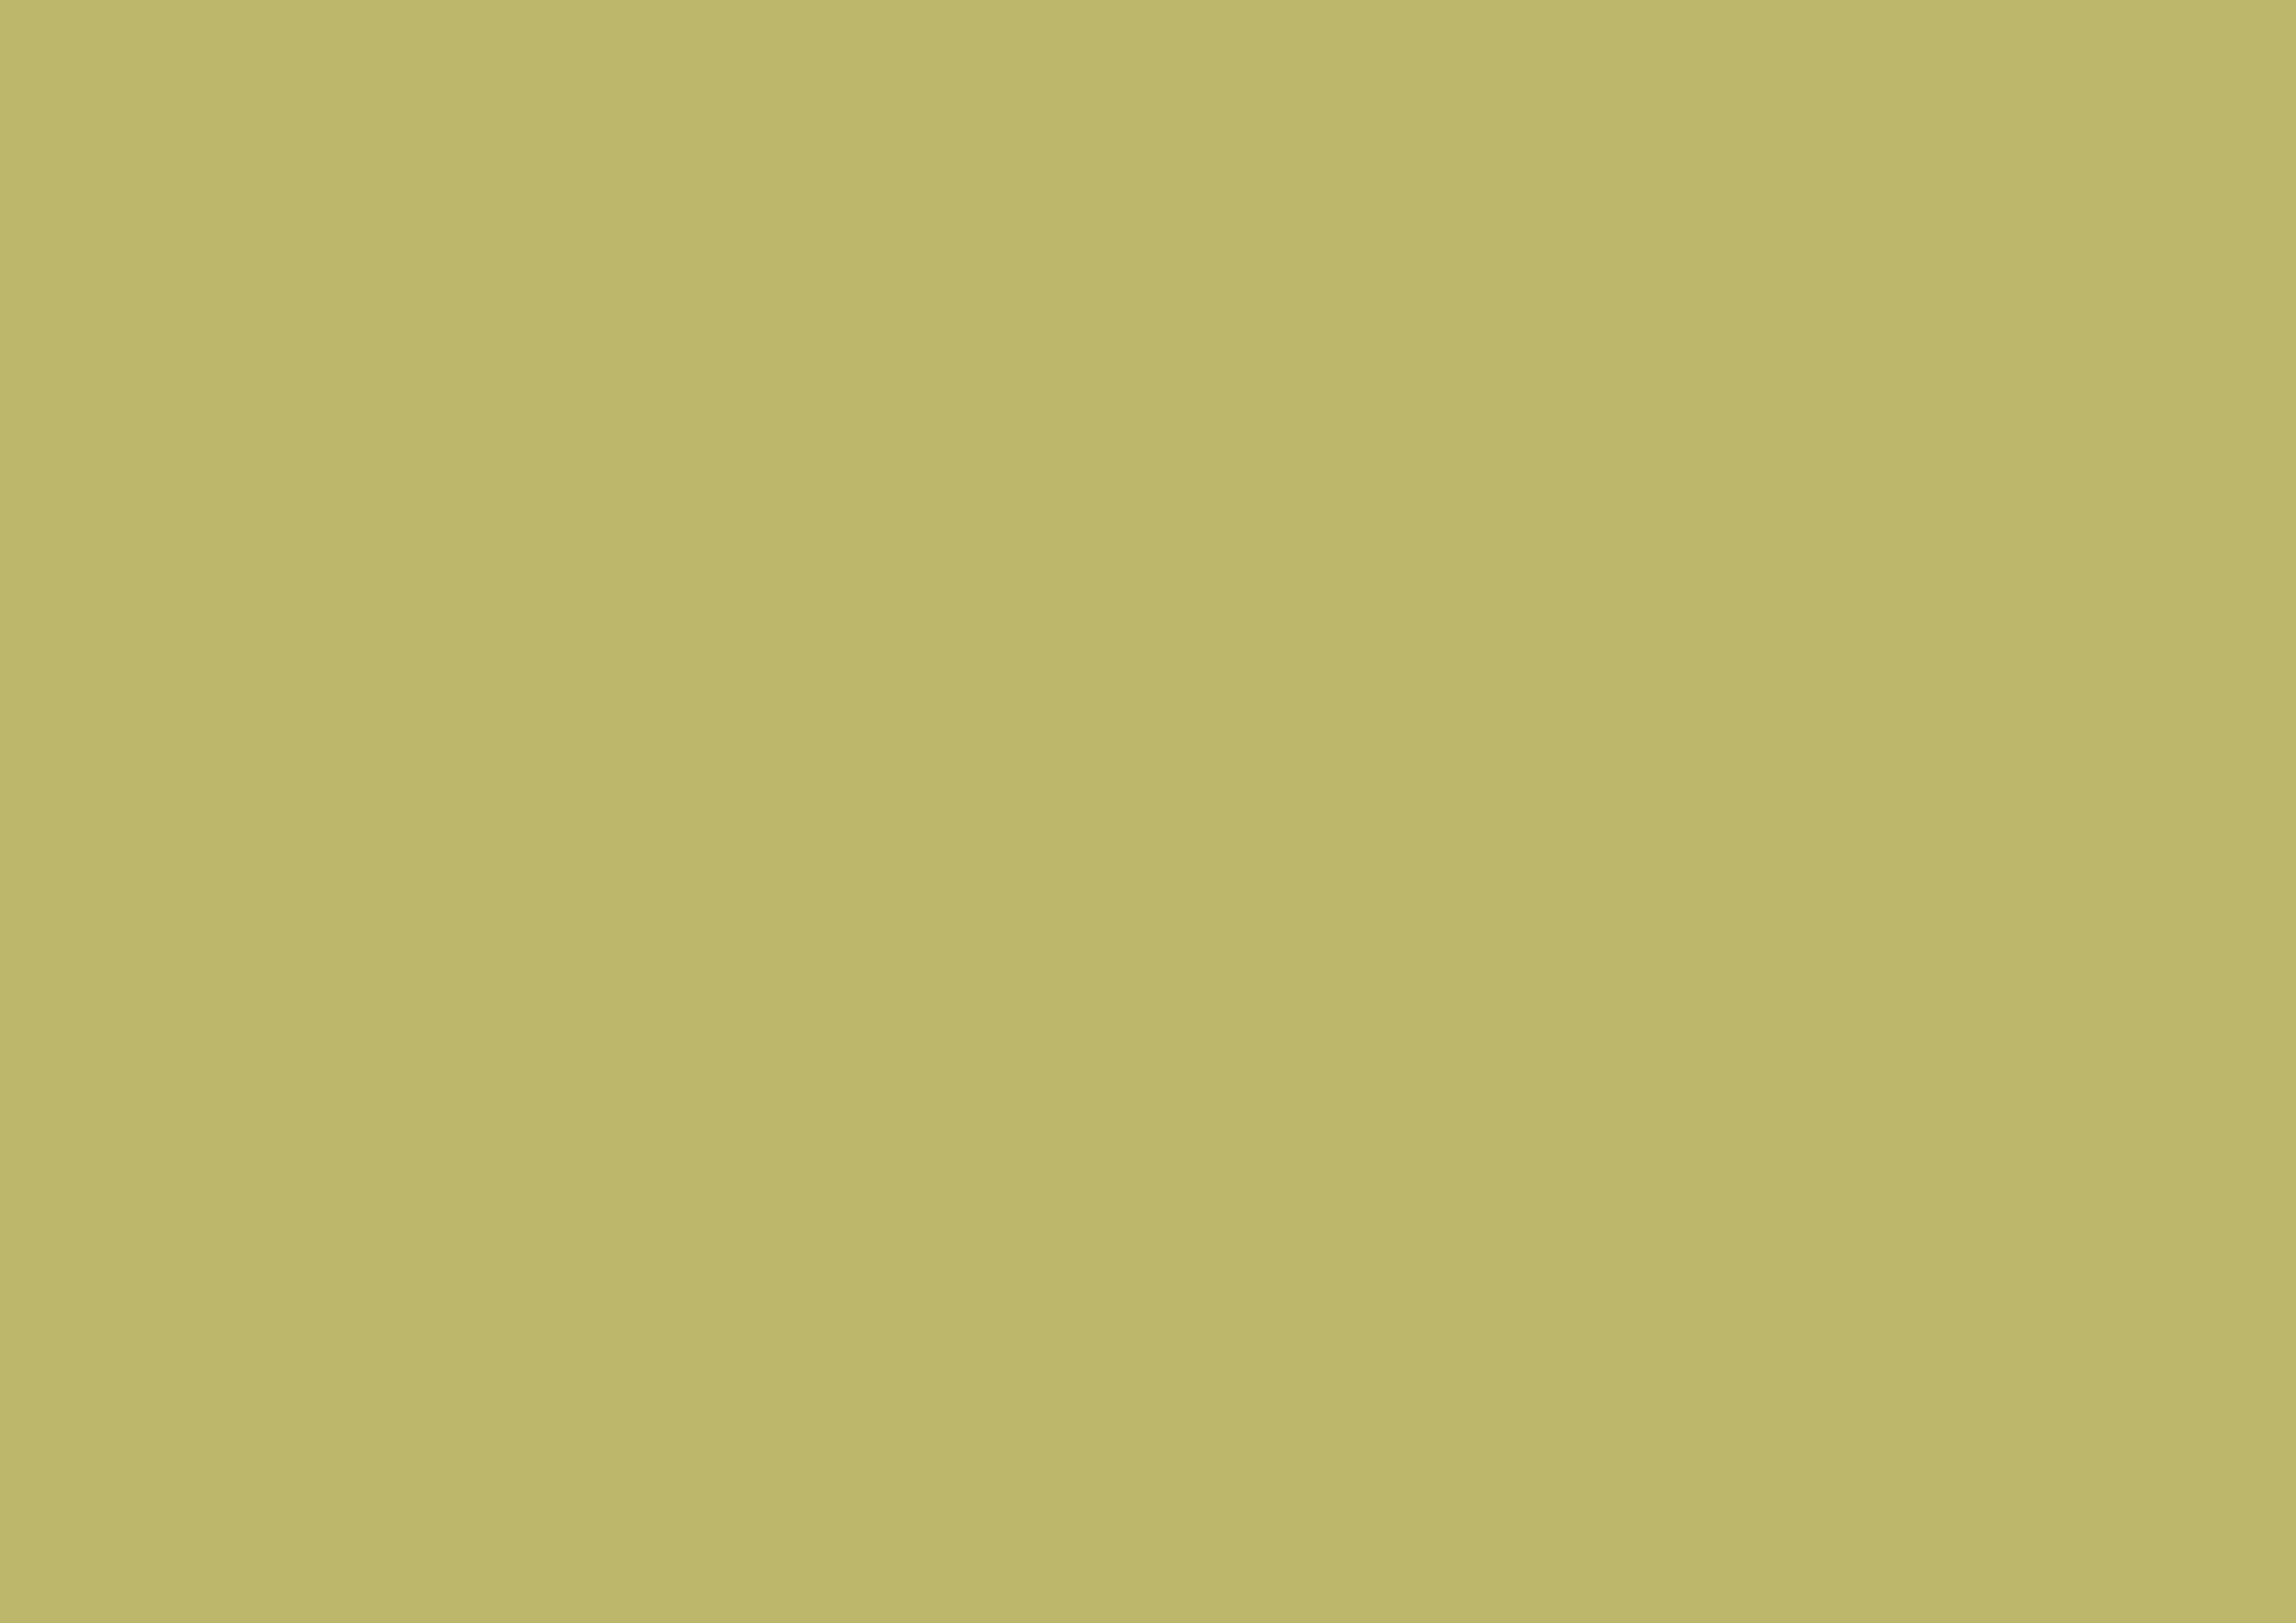 3508x2480 Dark Khaki Solid Color Background